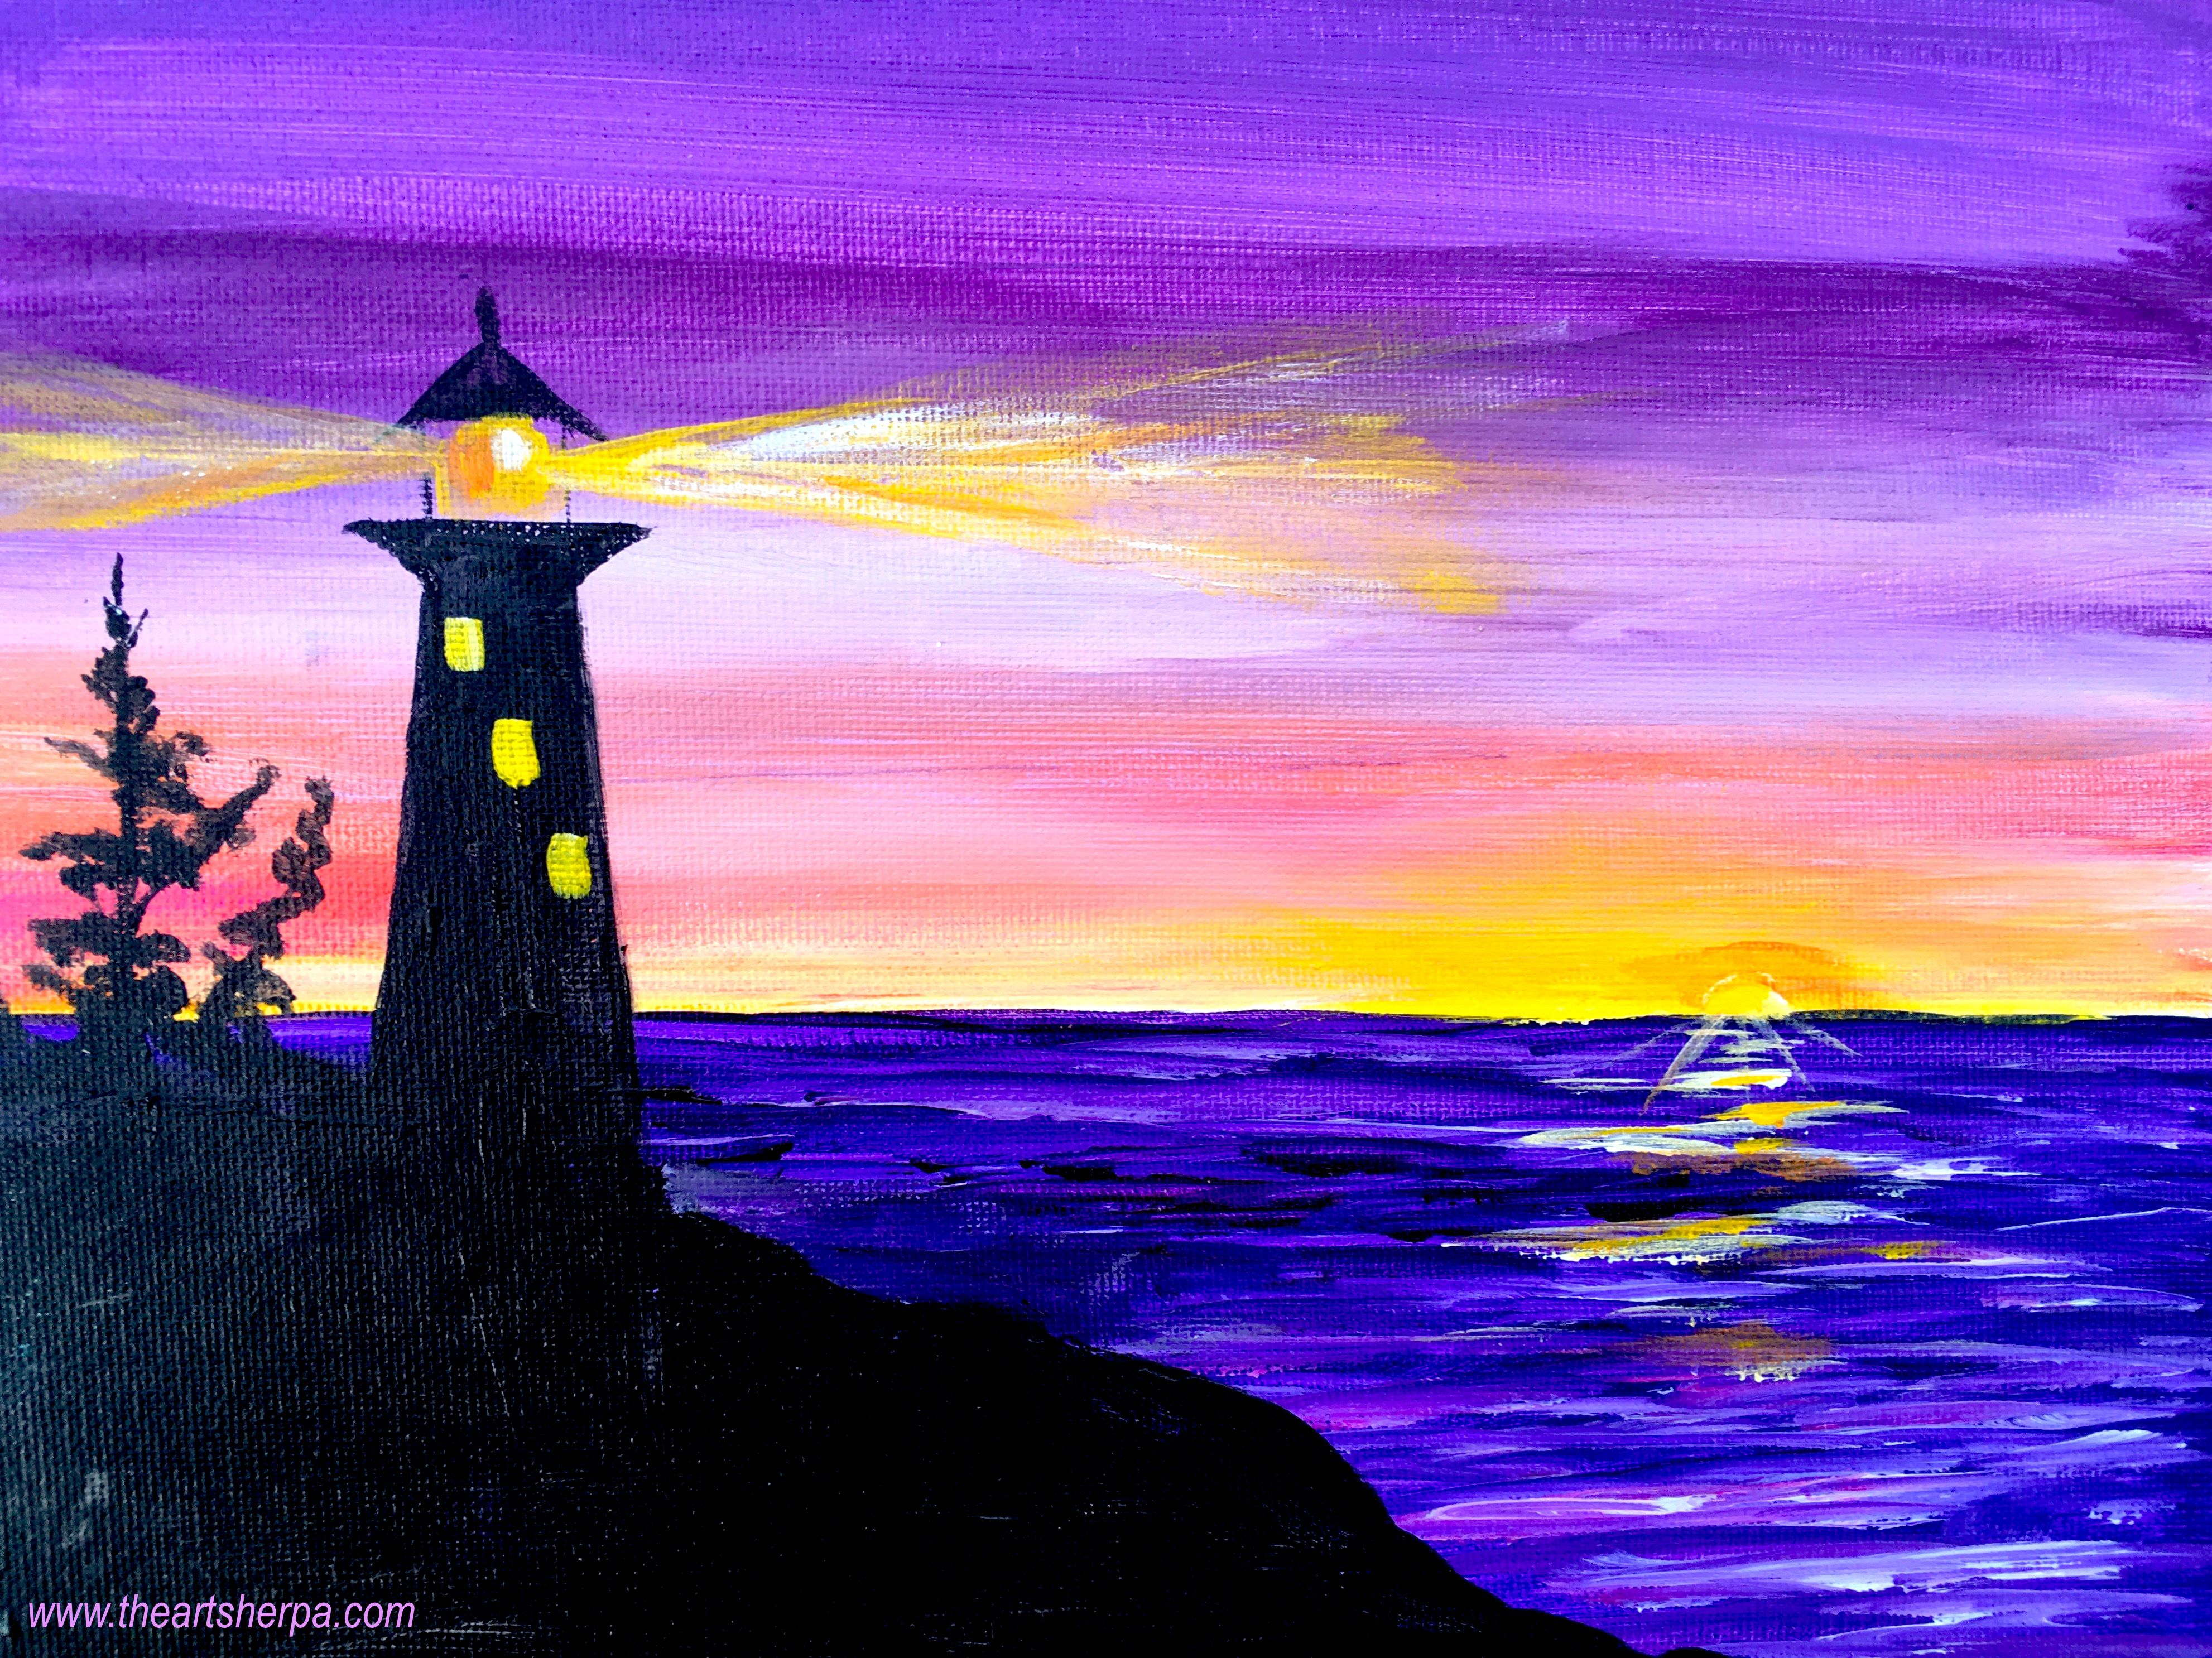 Easy Paintings Easy Sunrise Painting Of A Silhouette Lighthouse With Light On